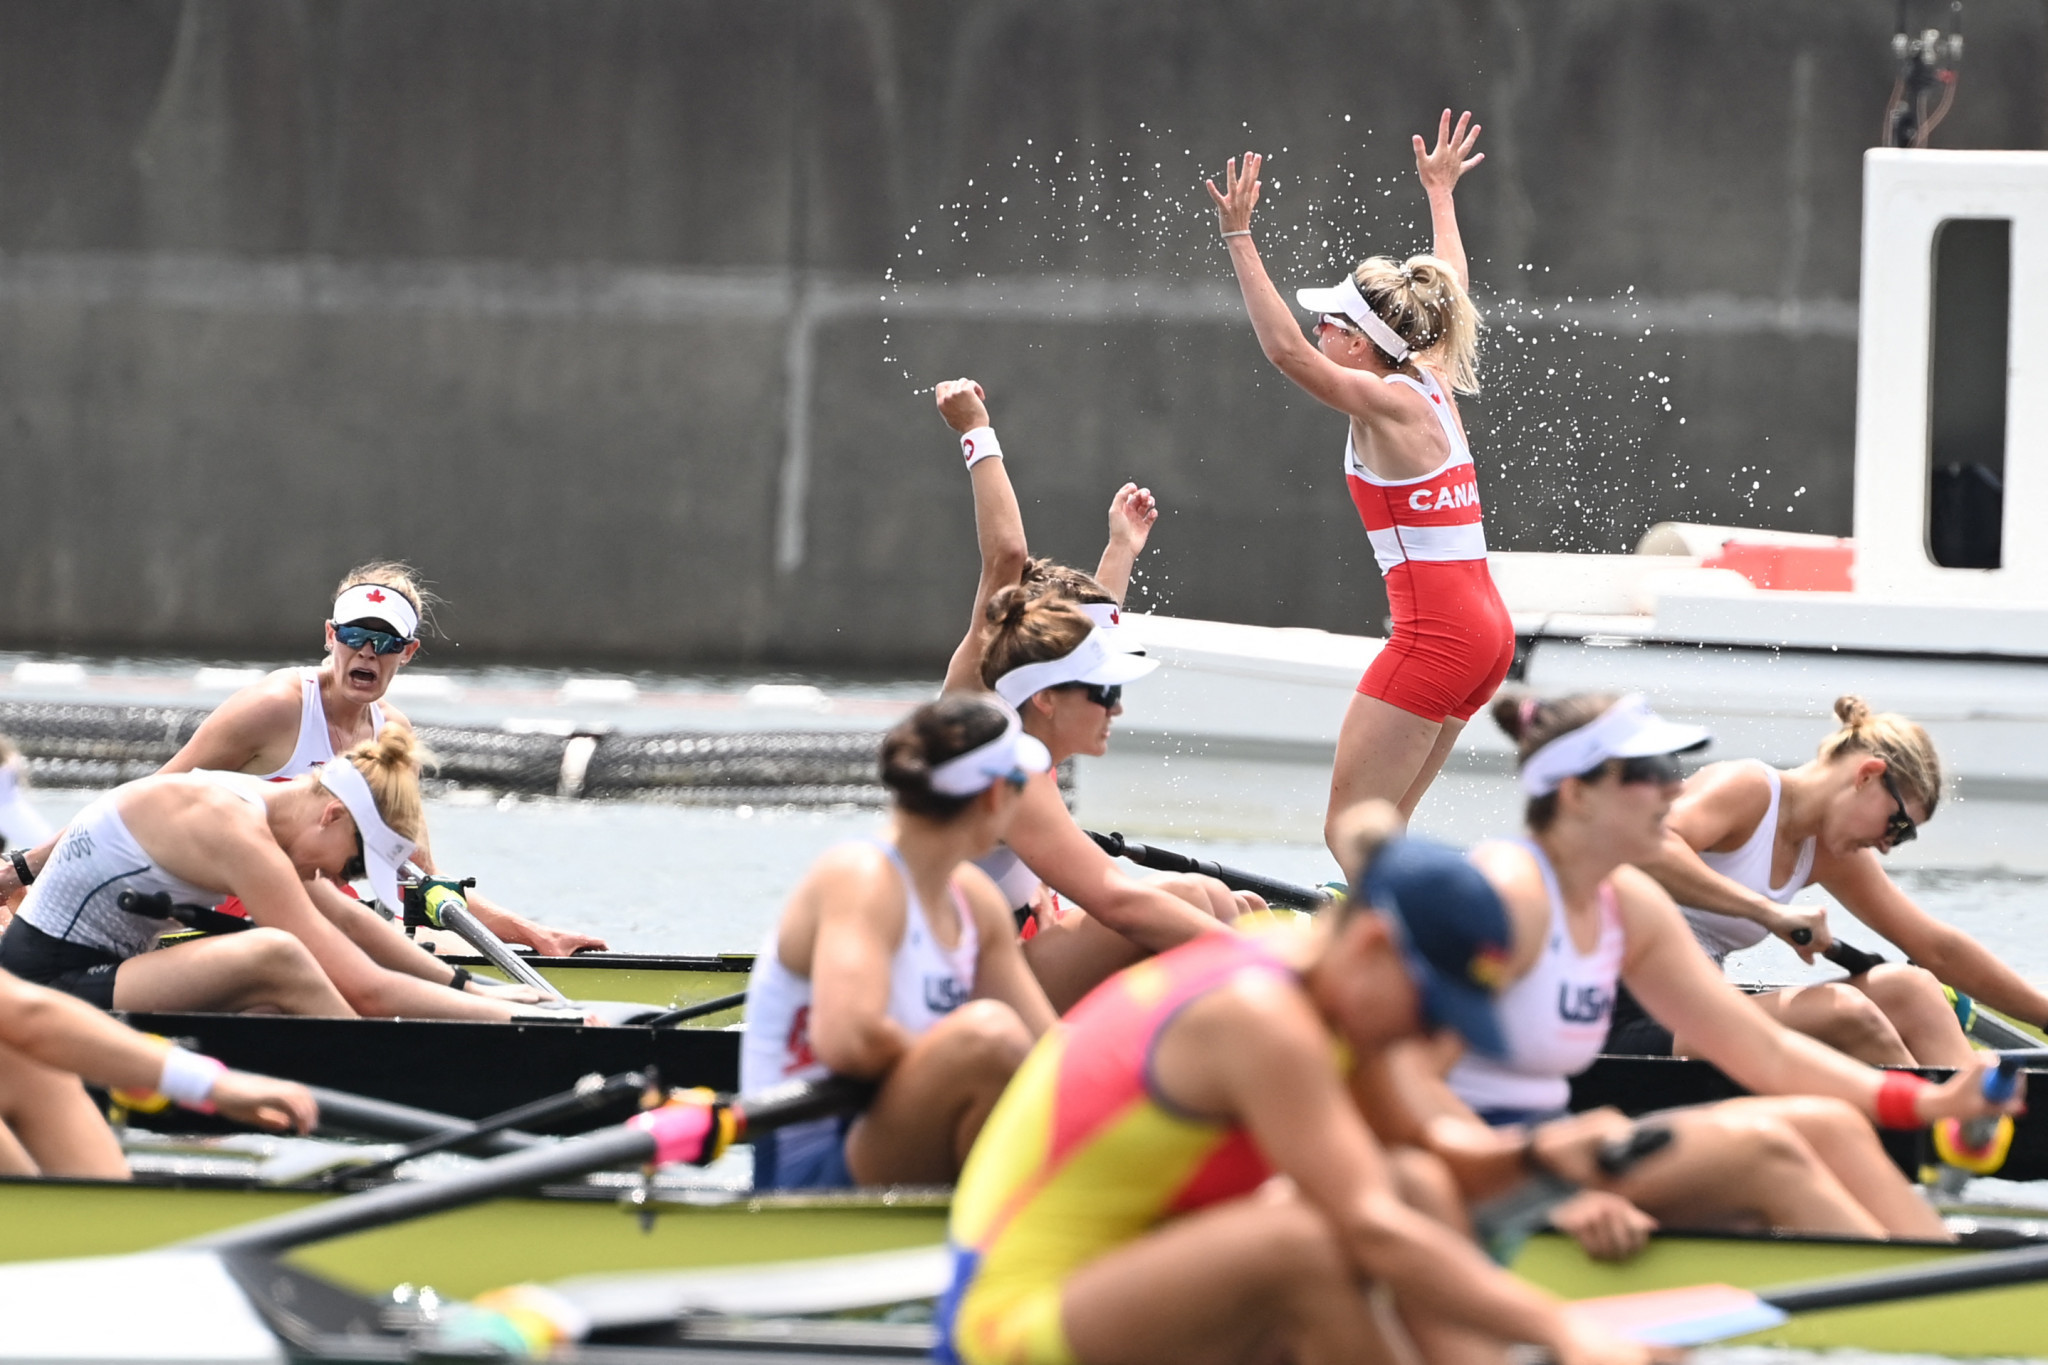 Kristen Kit is unable to control her excitement after being part of Canada's gold-medal winning women's eight team to end the United States' domination of the event ©Getty Images